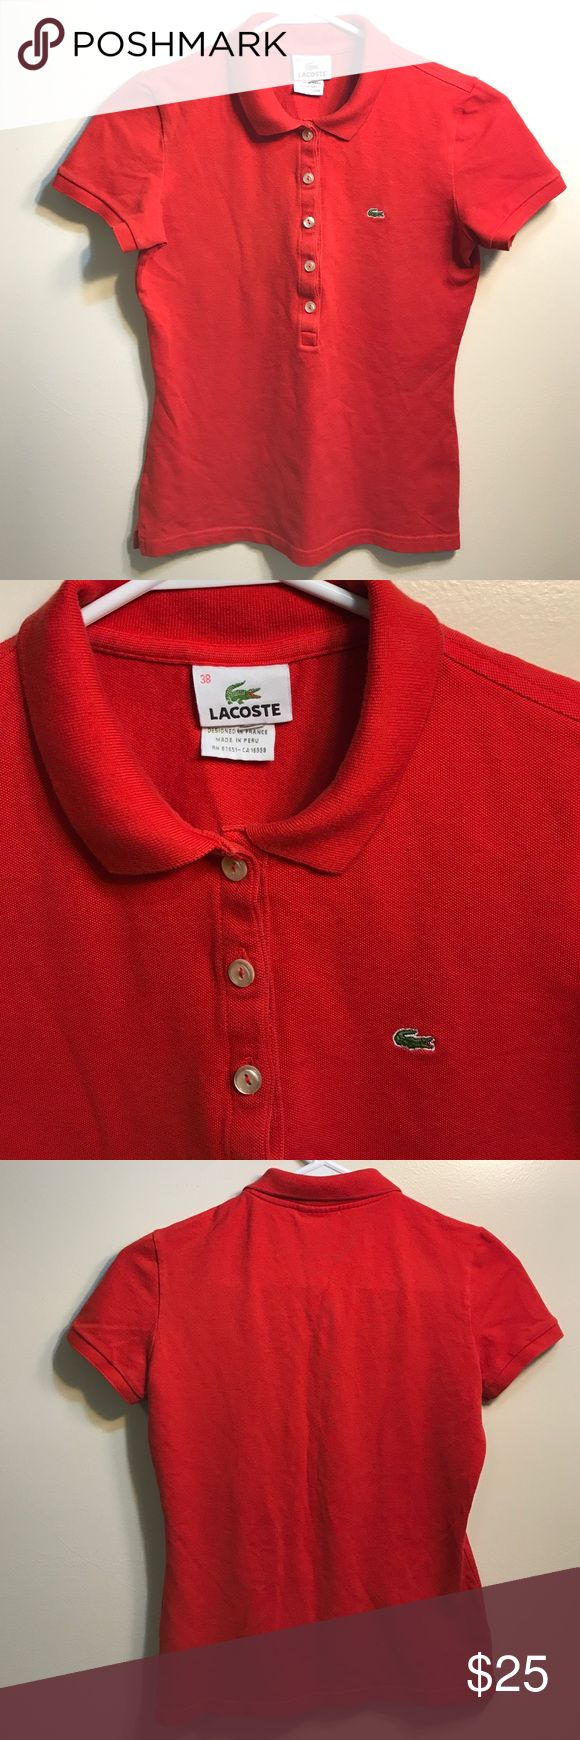 Lacoste Polo Shirt Pre-Loved. Used Lacoste Tops Button Down Shirts